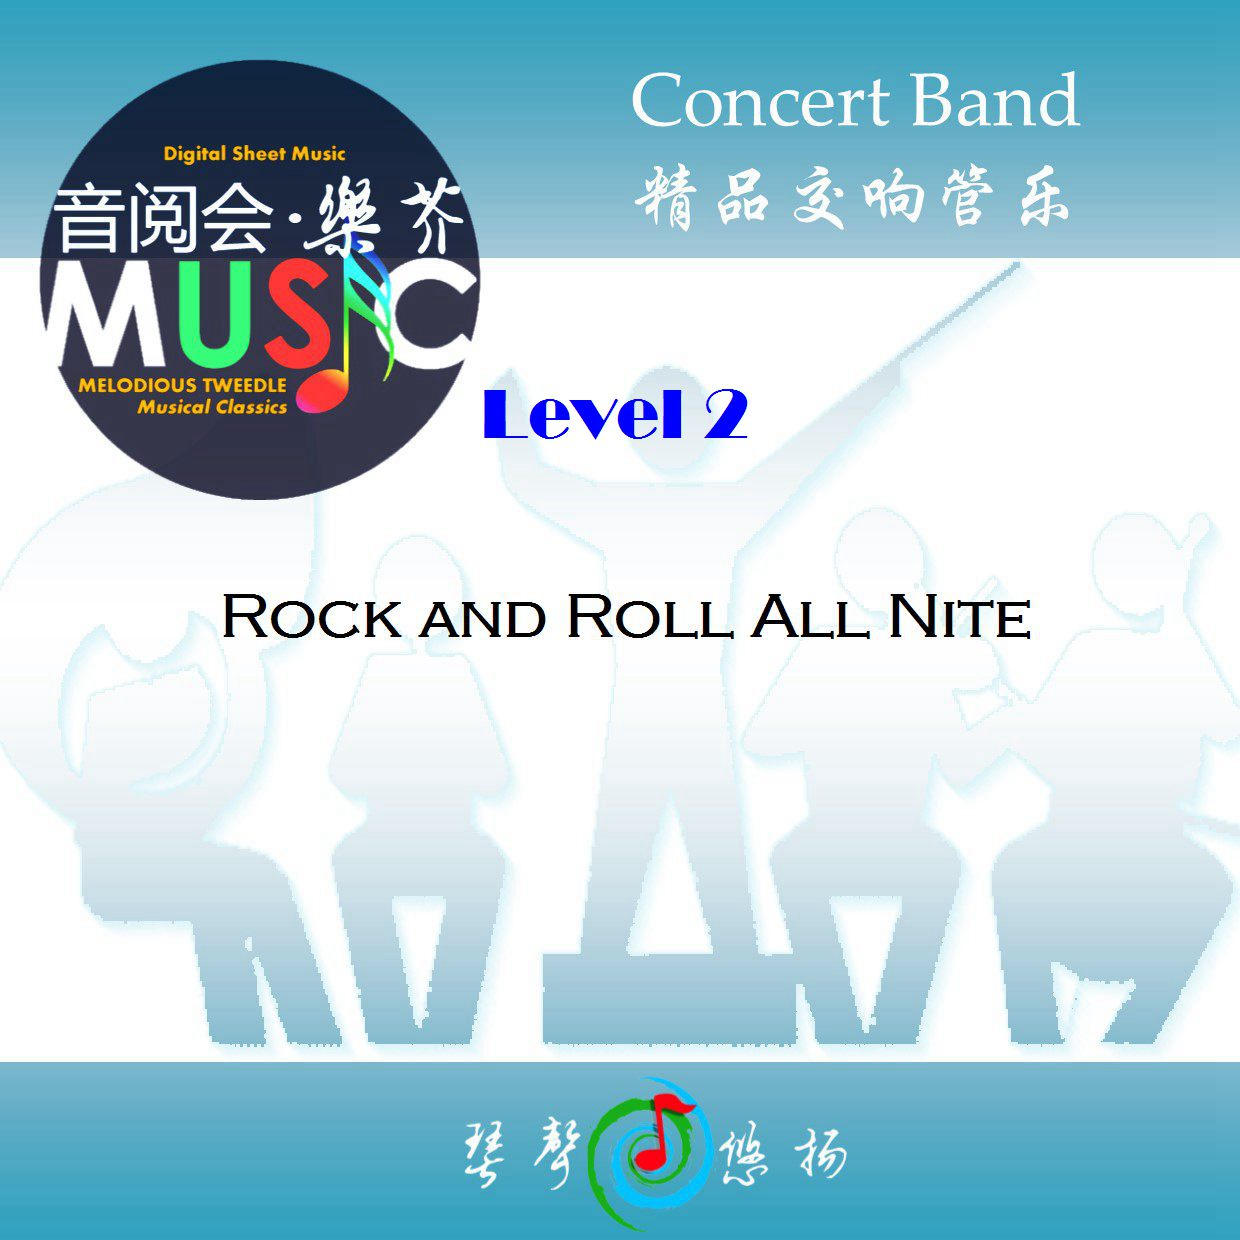 2 Symphonic Wind Ensemble Rock and Roll All Nite score + spectrum